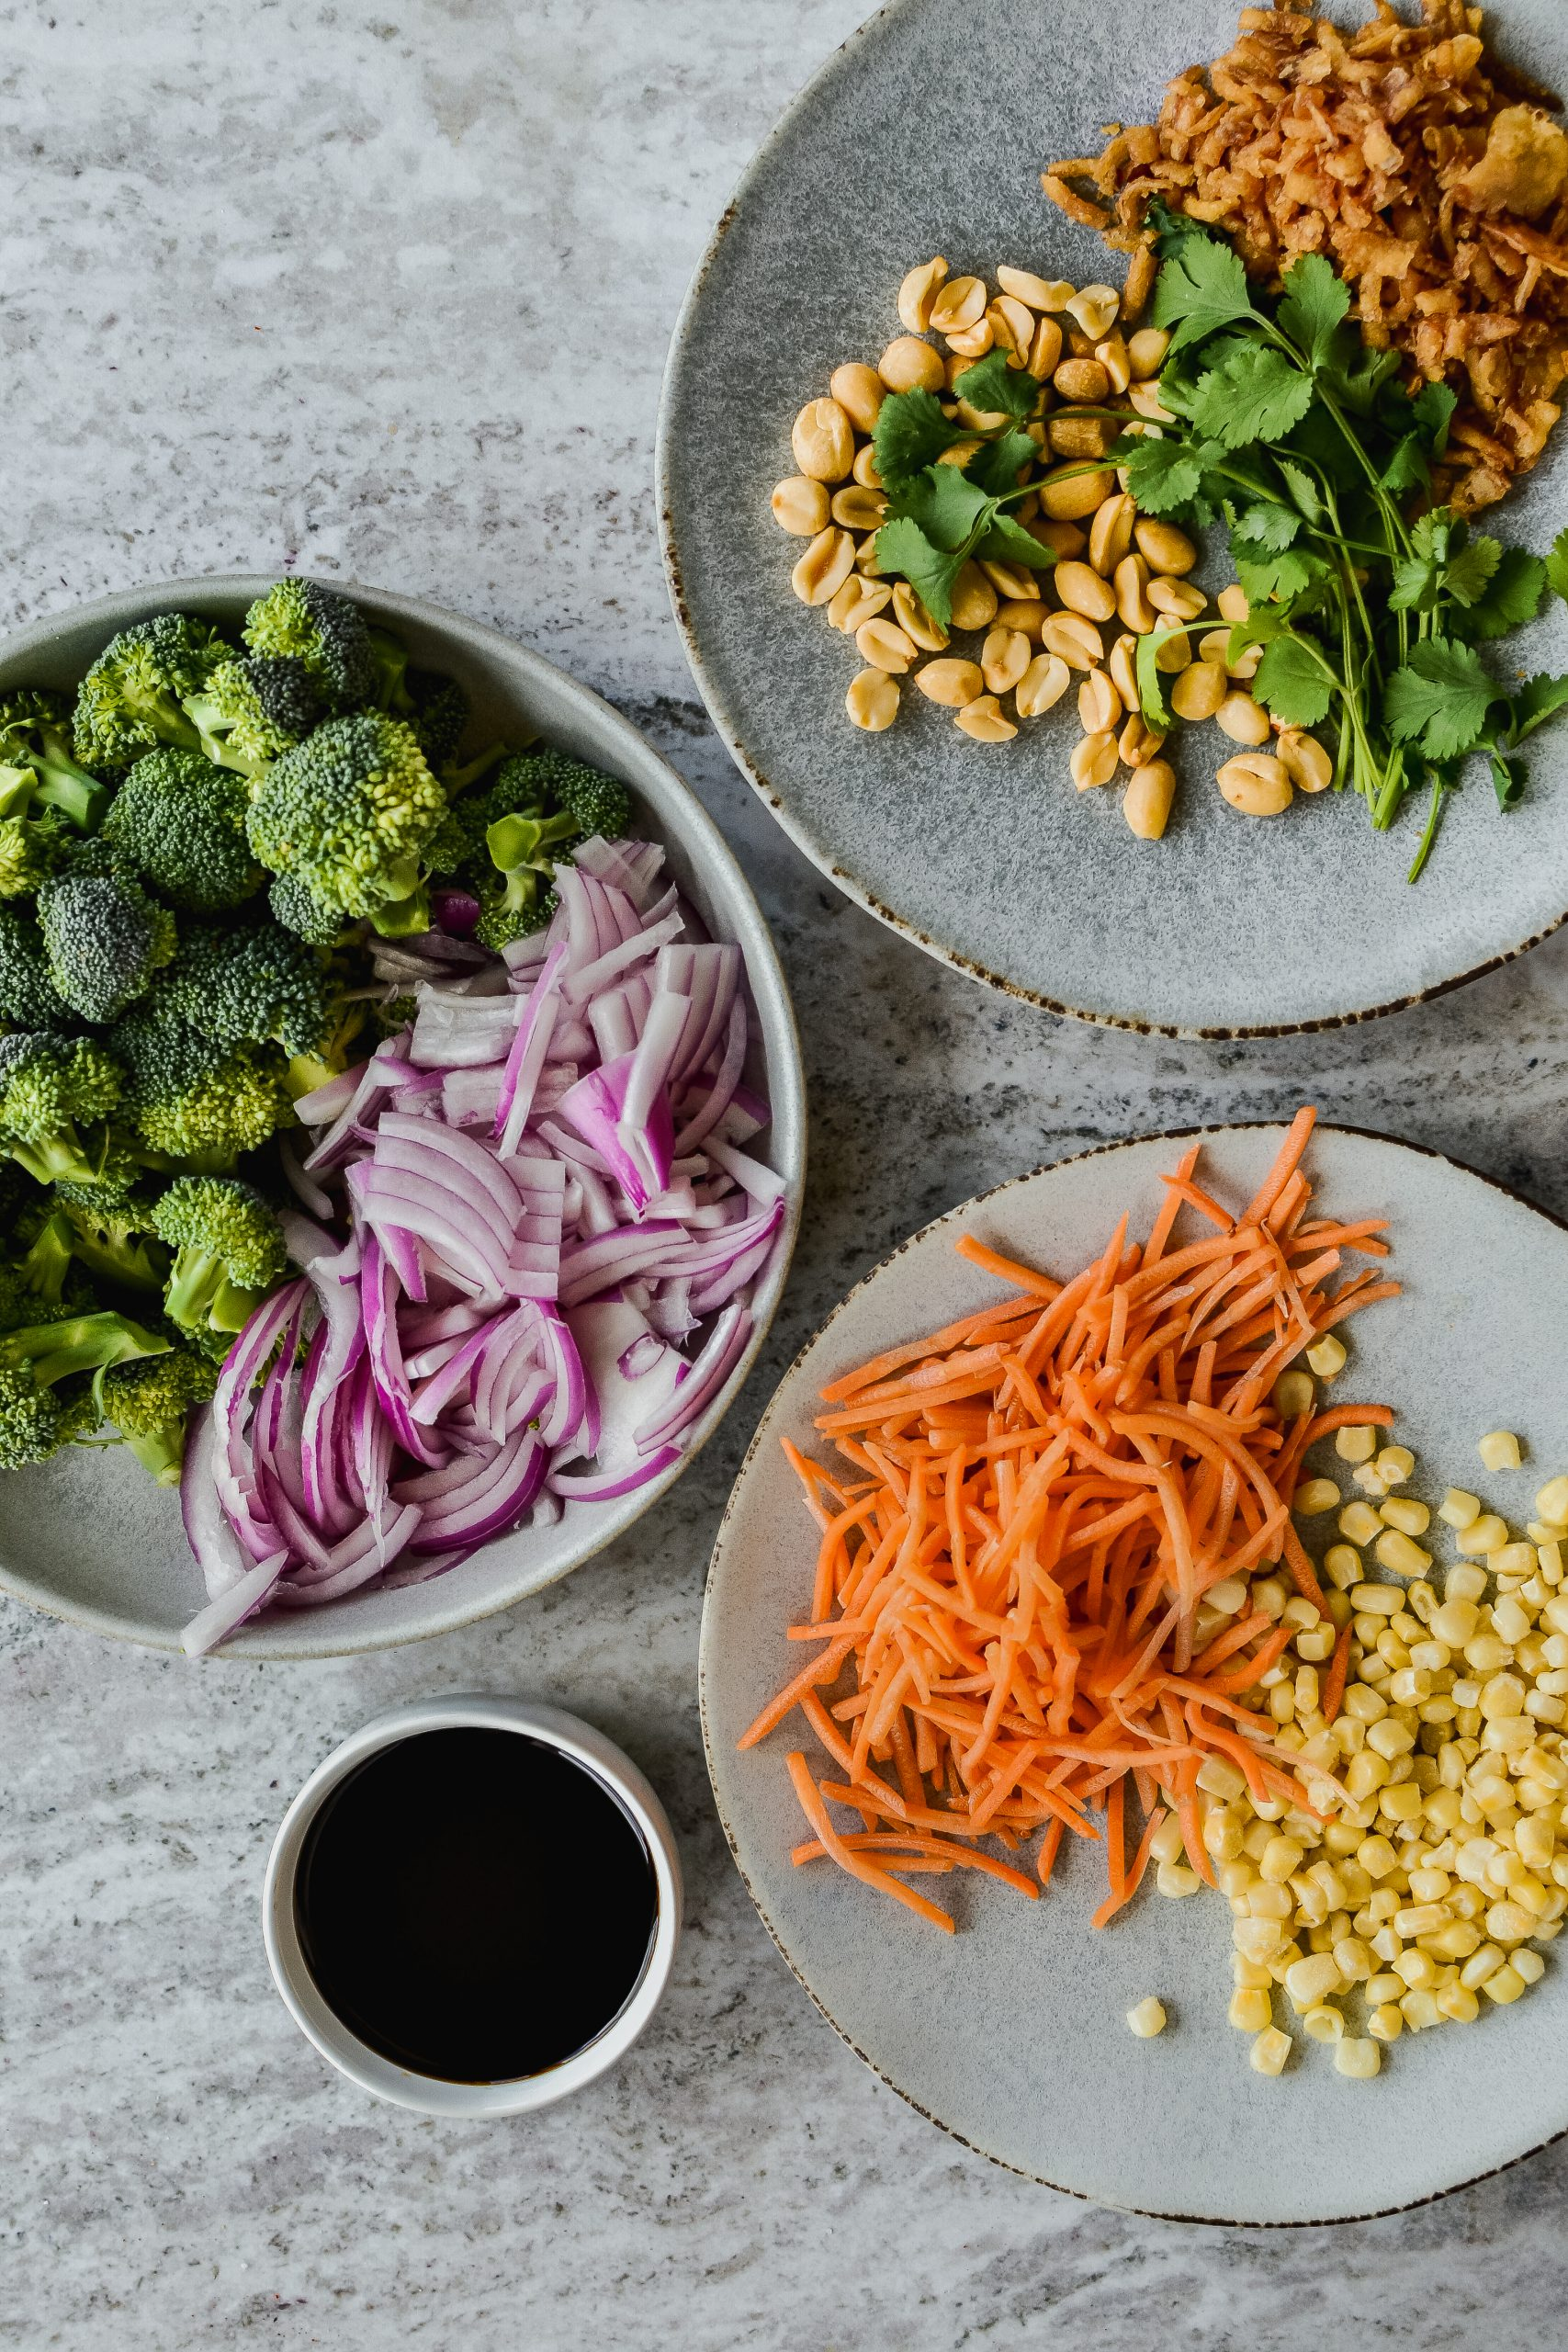 Toppings for rice bowl; roasted broccoli and red onion, shredded carrots, sweet corn, fried onions, peanuts, cilantro, and teriyaki sauce